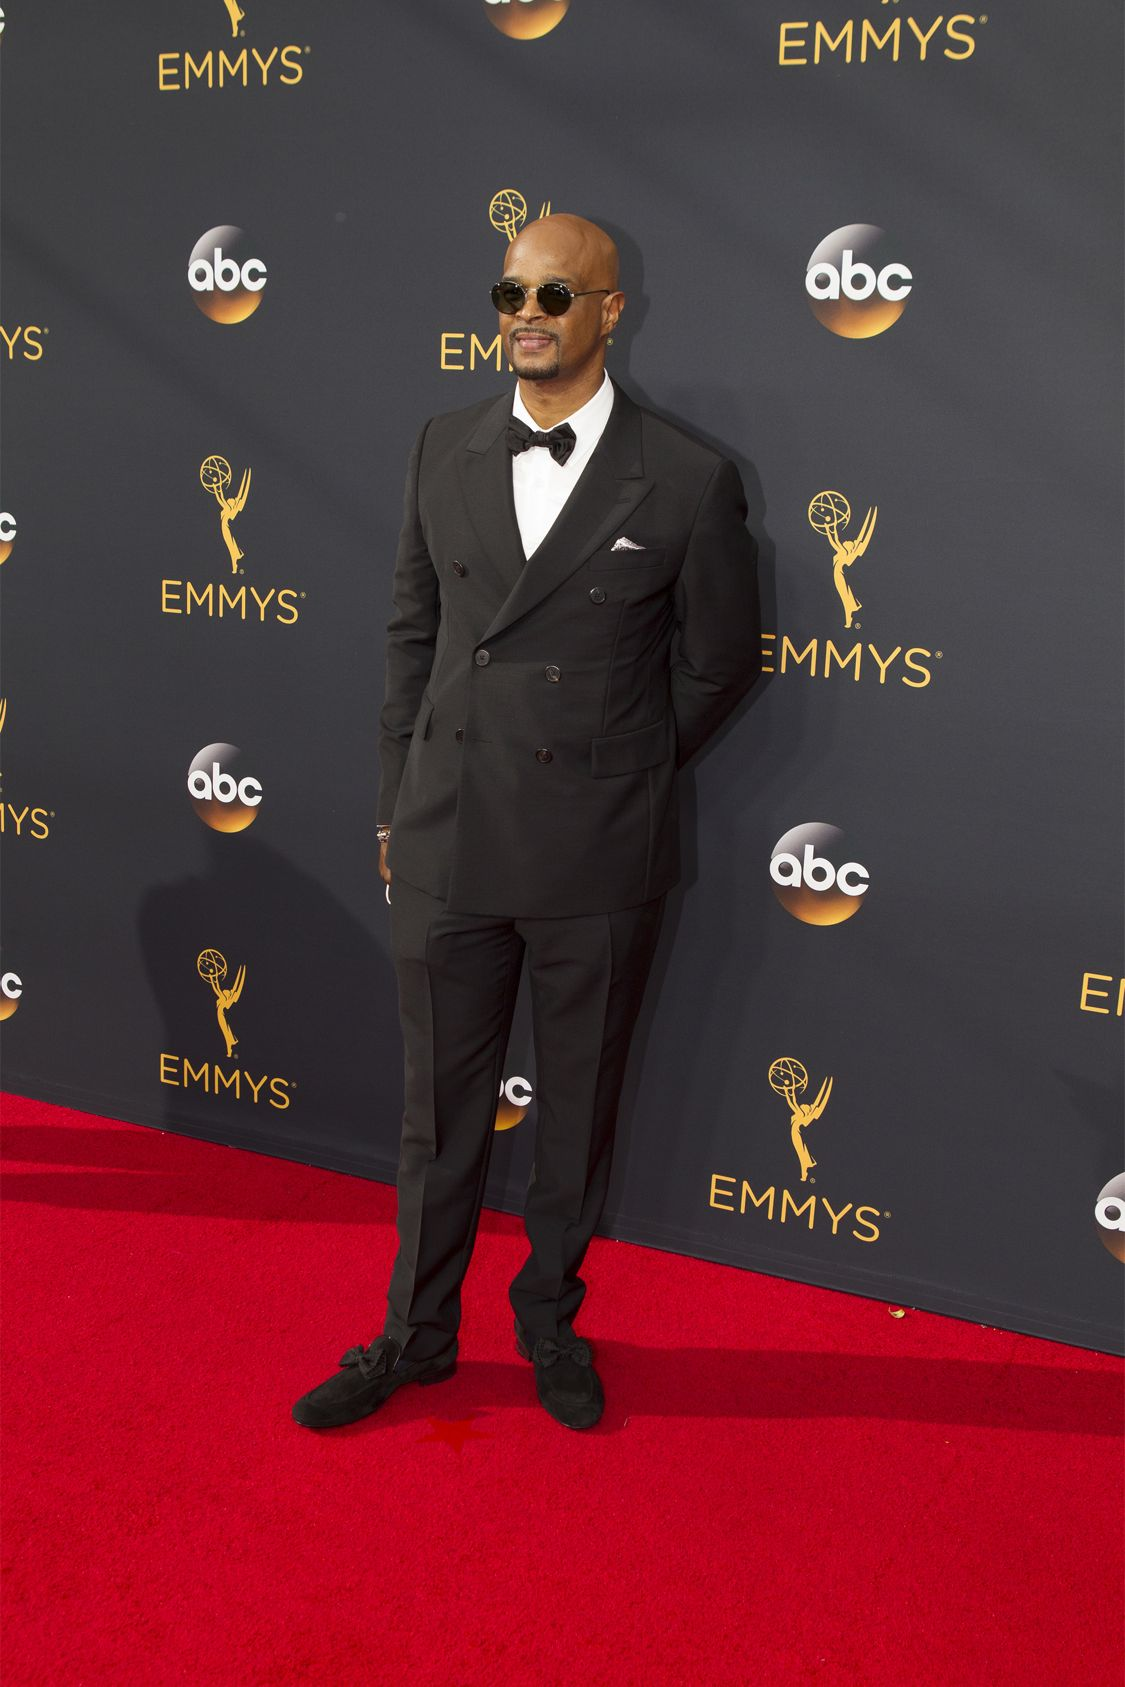 """THE 68TH EMMY(r) AWARDS - """"The 68th Emmy Awards"""" broadcasts live from The Microsoft Theater in Los Angeles, Sunday, September 18 (7:00-11:00 p.m. EDT/4:00-8:00 p.m. PDT), on ABC and is hosted by Jimmy Kimmel. (ABC/Rick Rowell) DAMON WAYANS JR."""